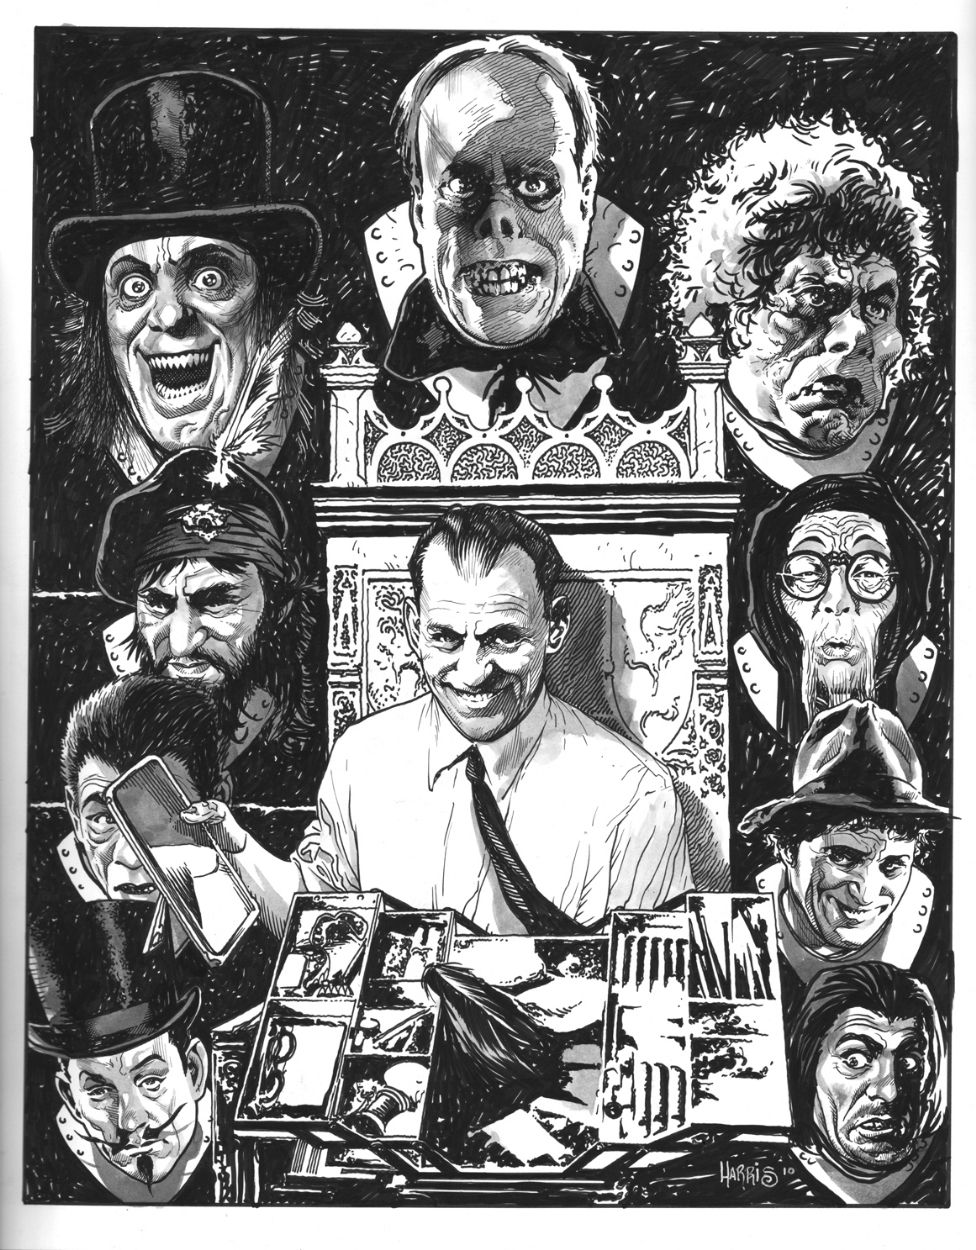 Lon Chaney: The Man Behind the Thousand Faces